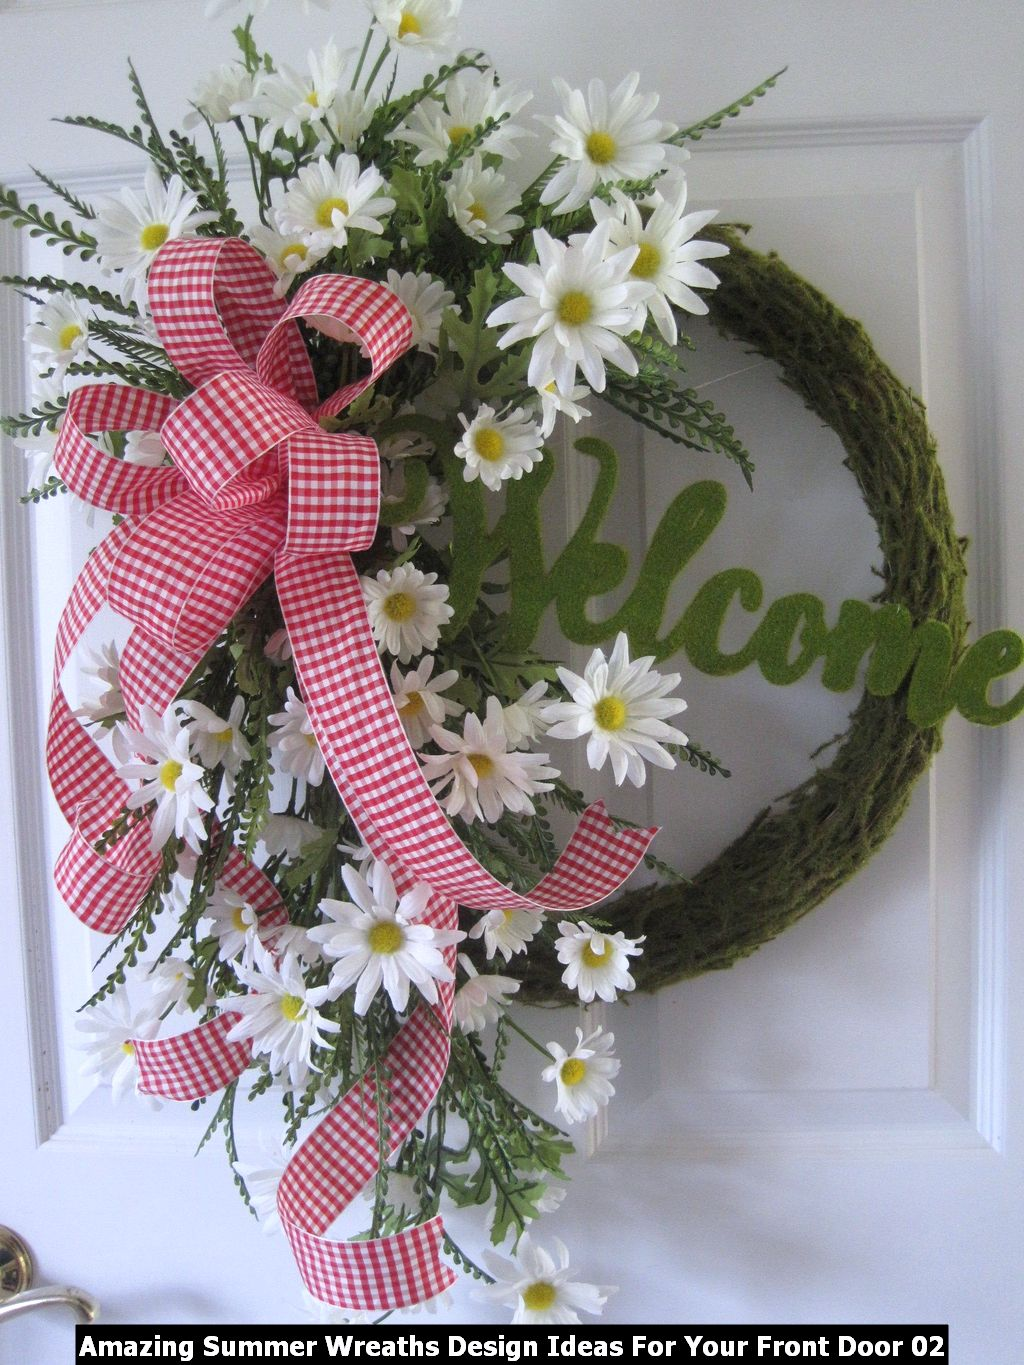 Amazing Summer Wreaths Design Ideas For Your Front Door 02